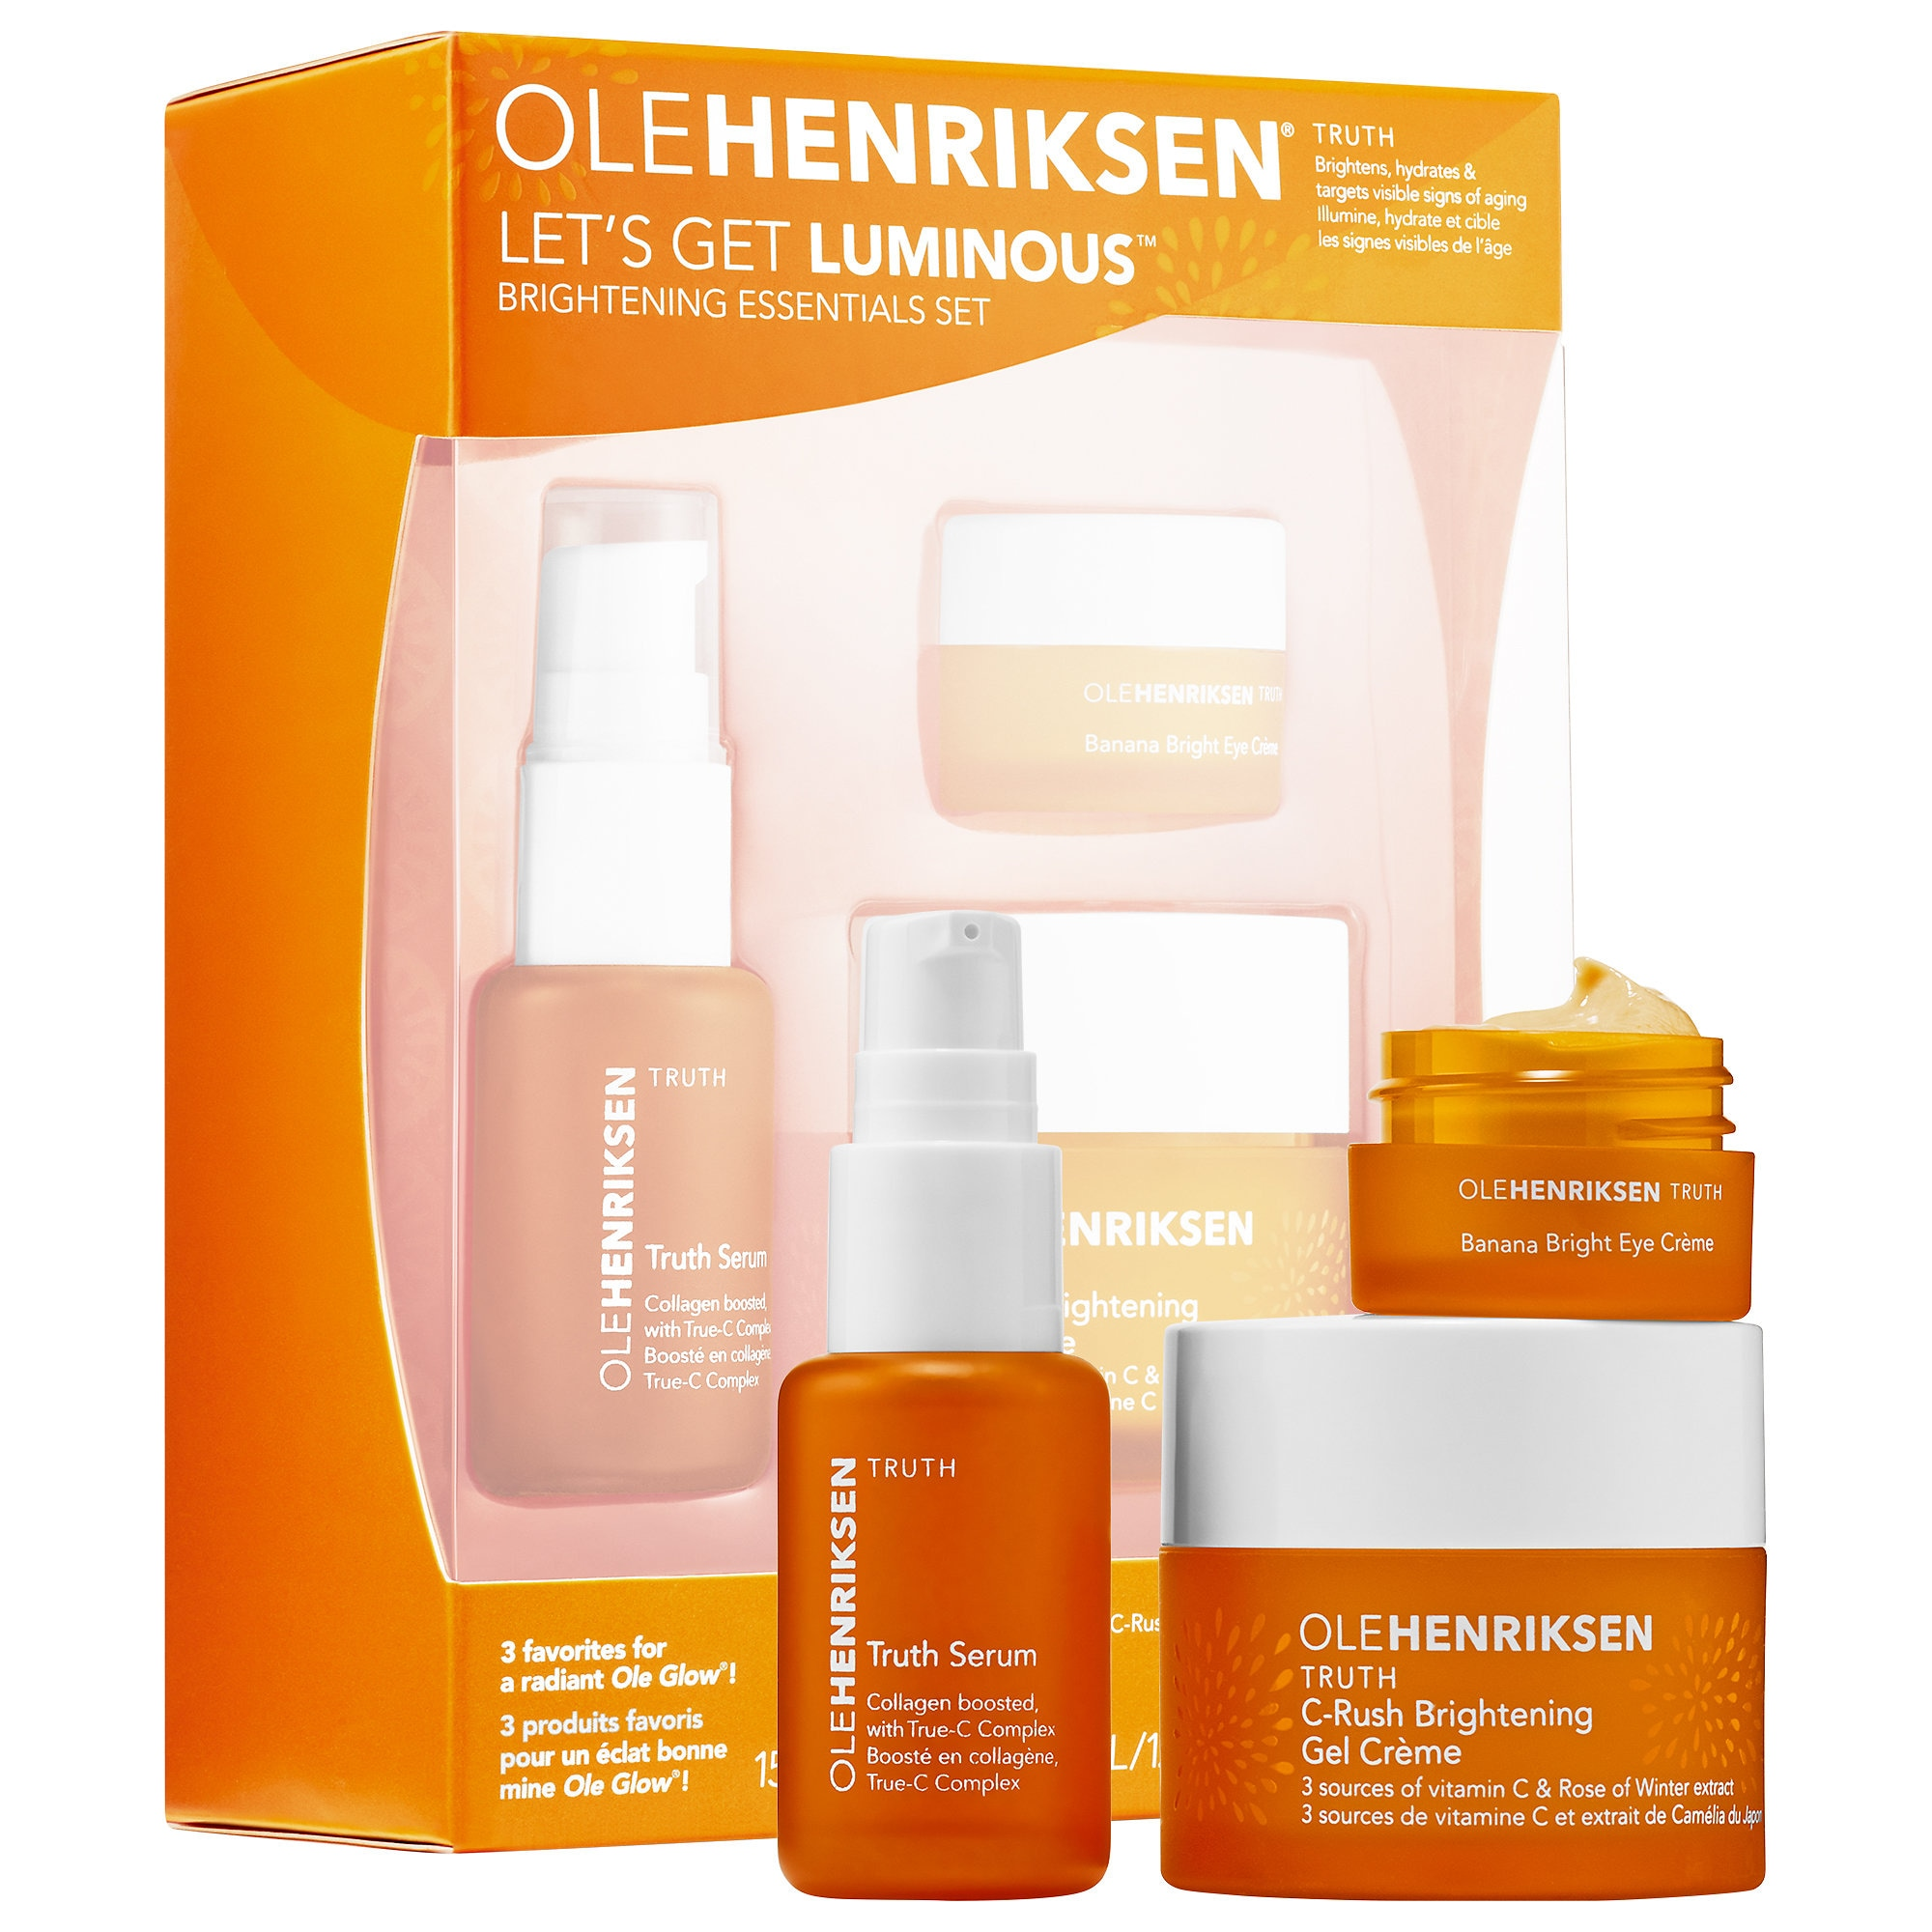 Ole Henriksen Let's Get Luminous™ Brightening Vitamin C Essentials Set